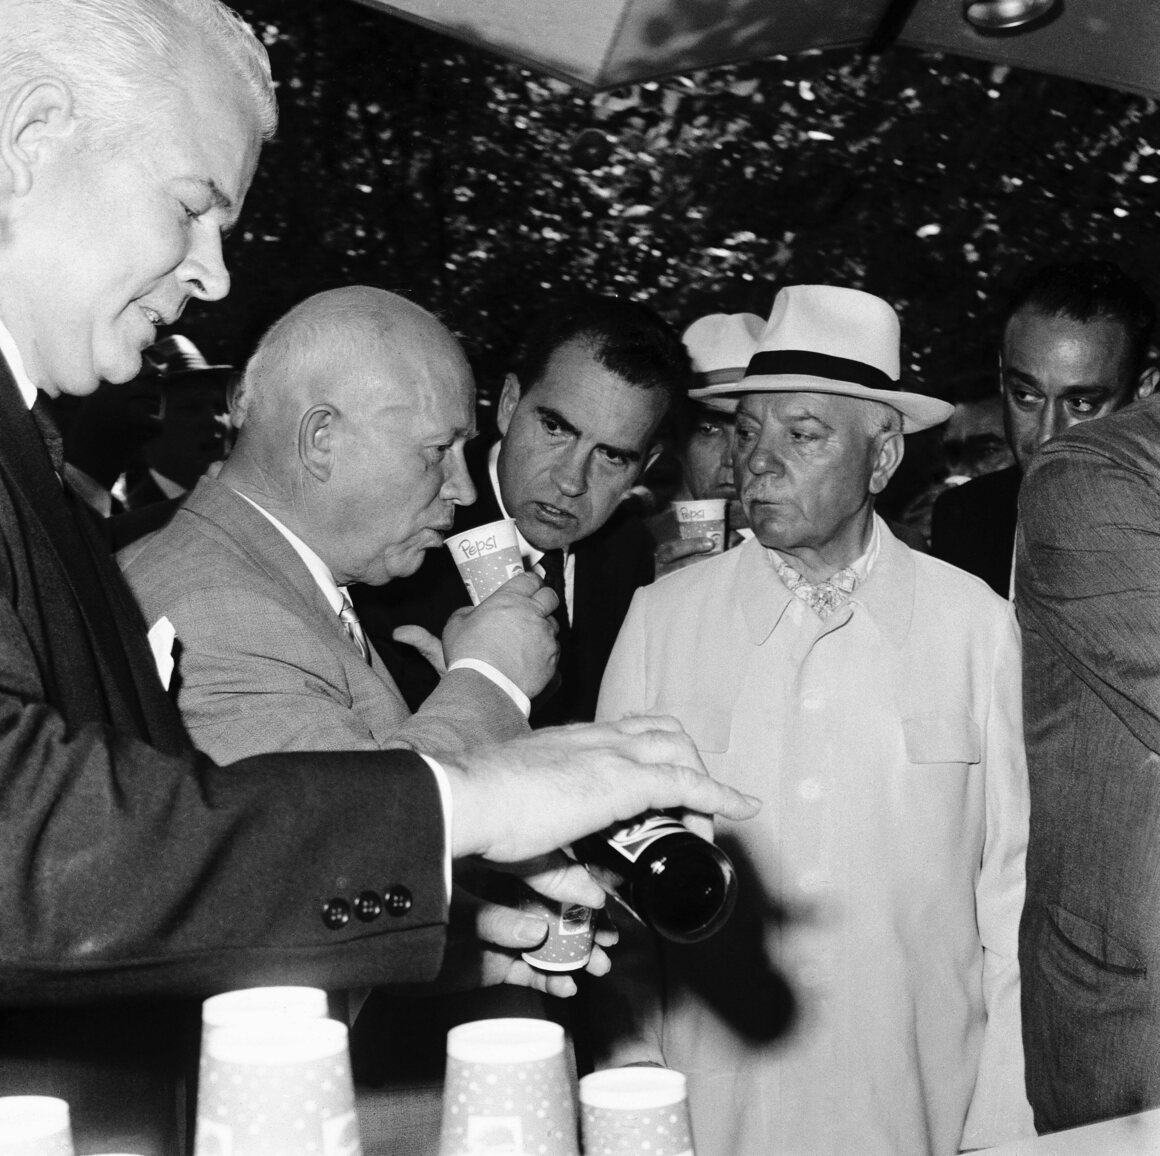 khrushchev drinking from a pepsi cup